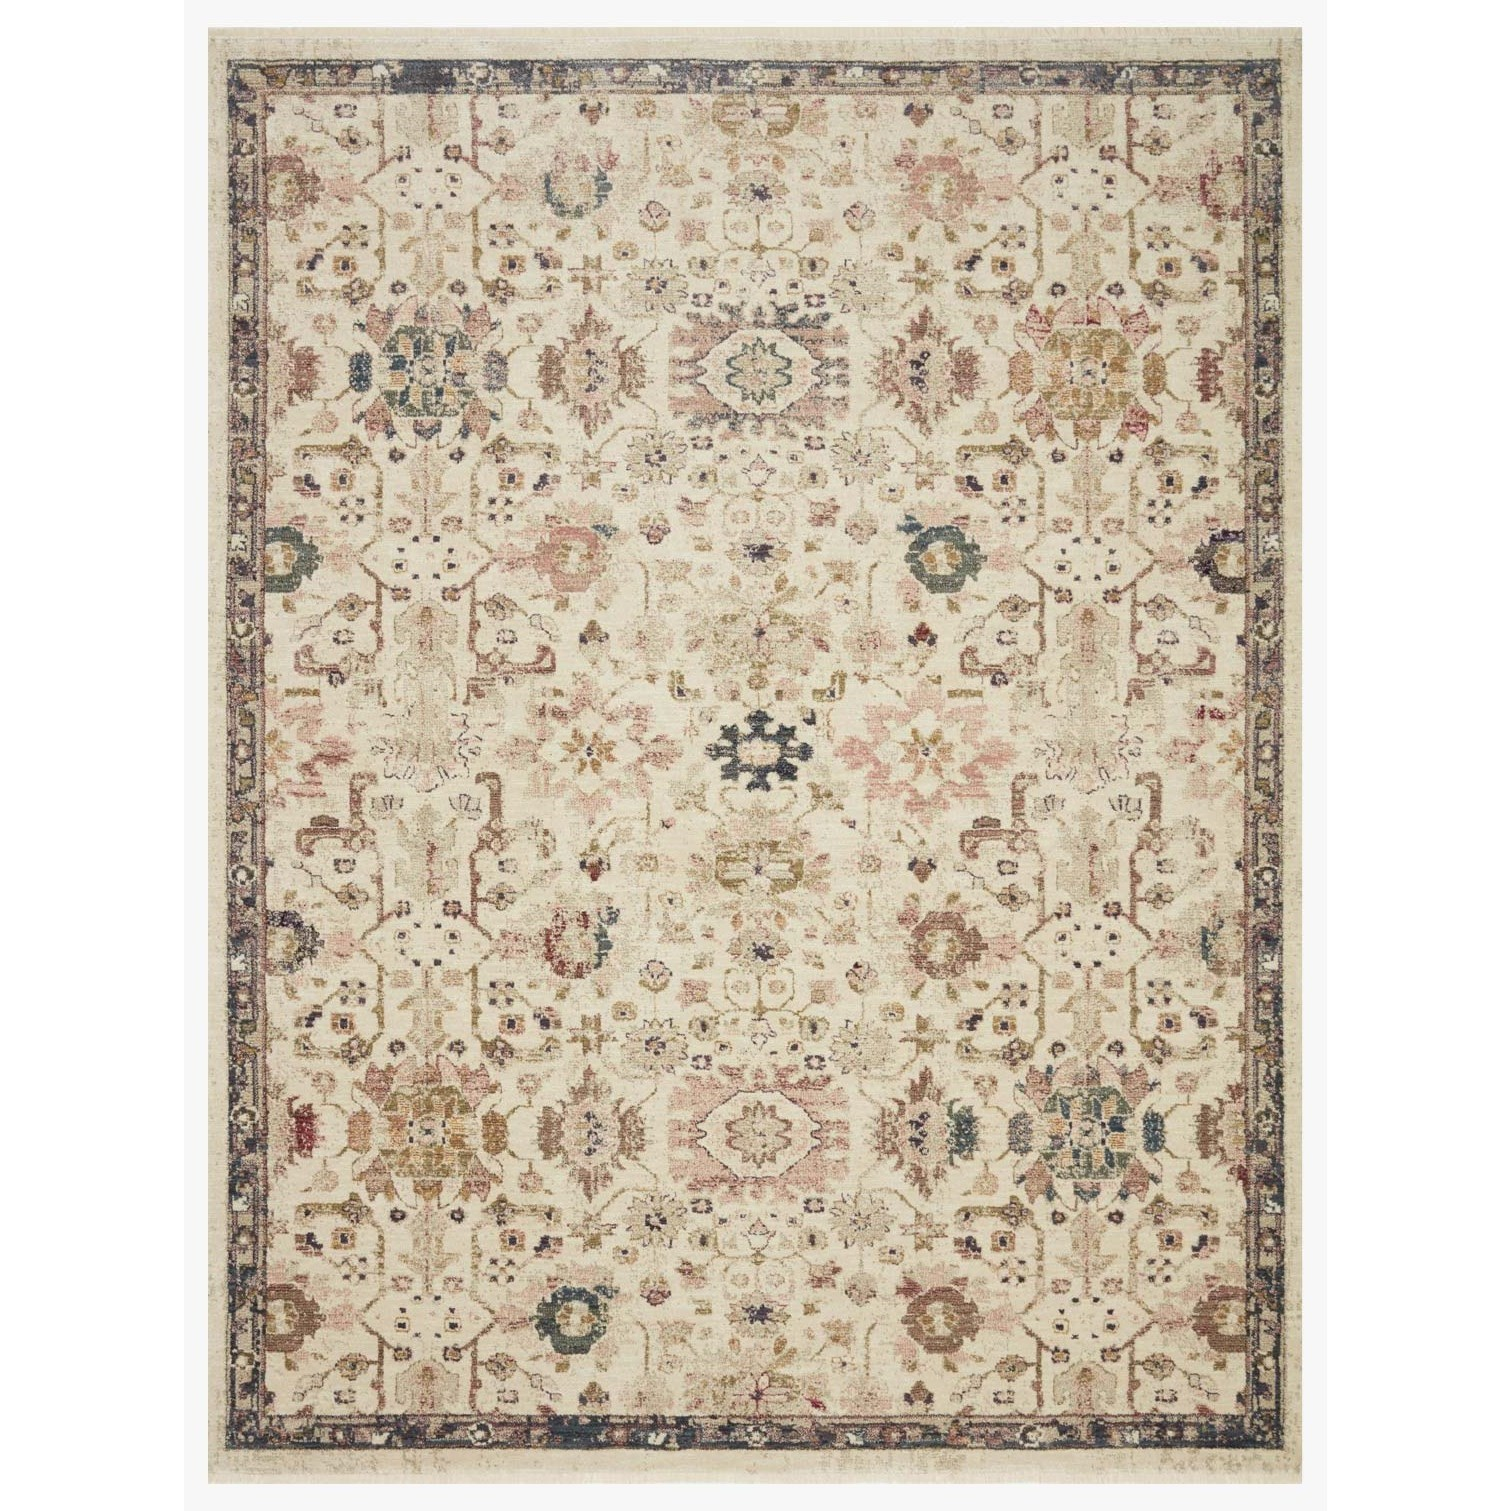 "Giada 3'7"" x 5'7"" Ivory / Multi Rug by Loloi Rugs at Sprintz Furniture"